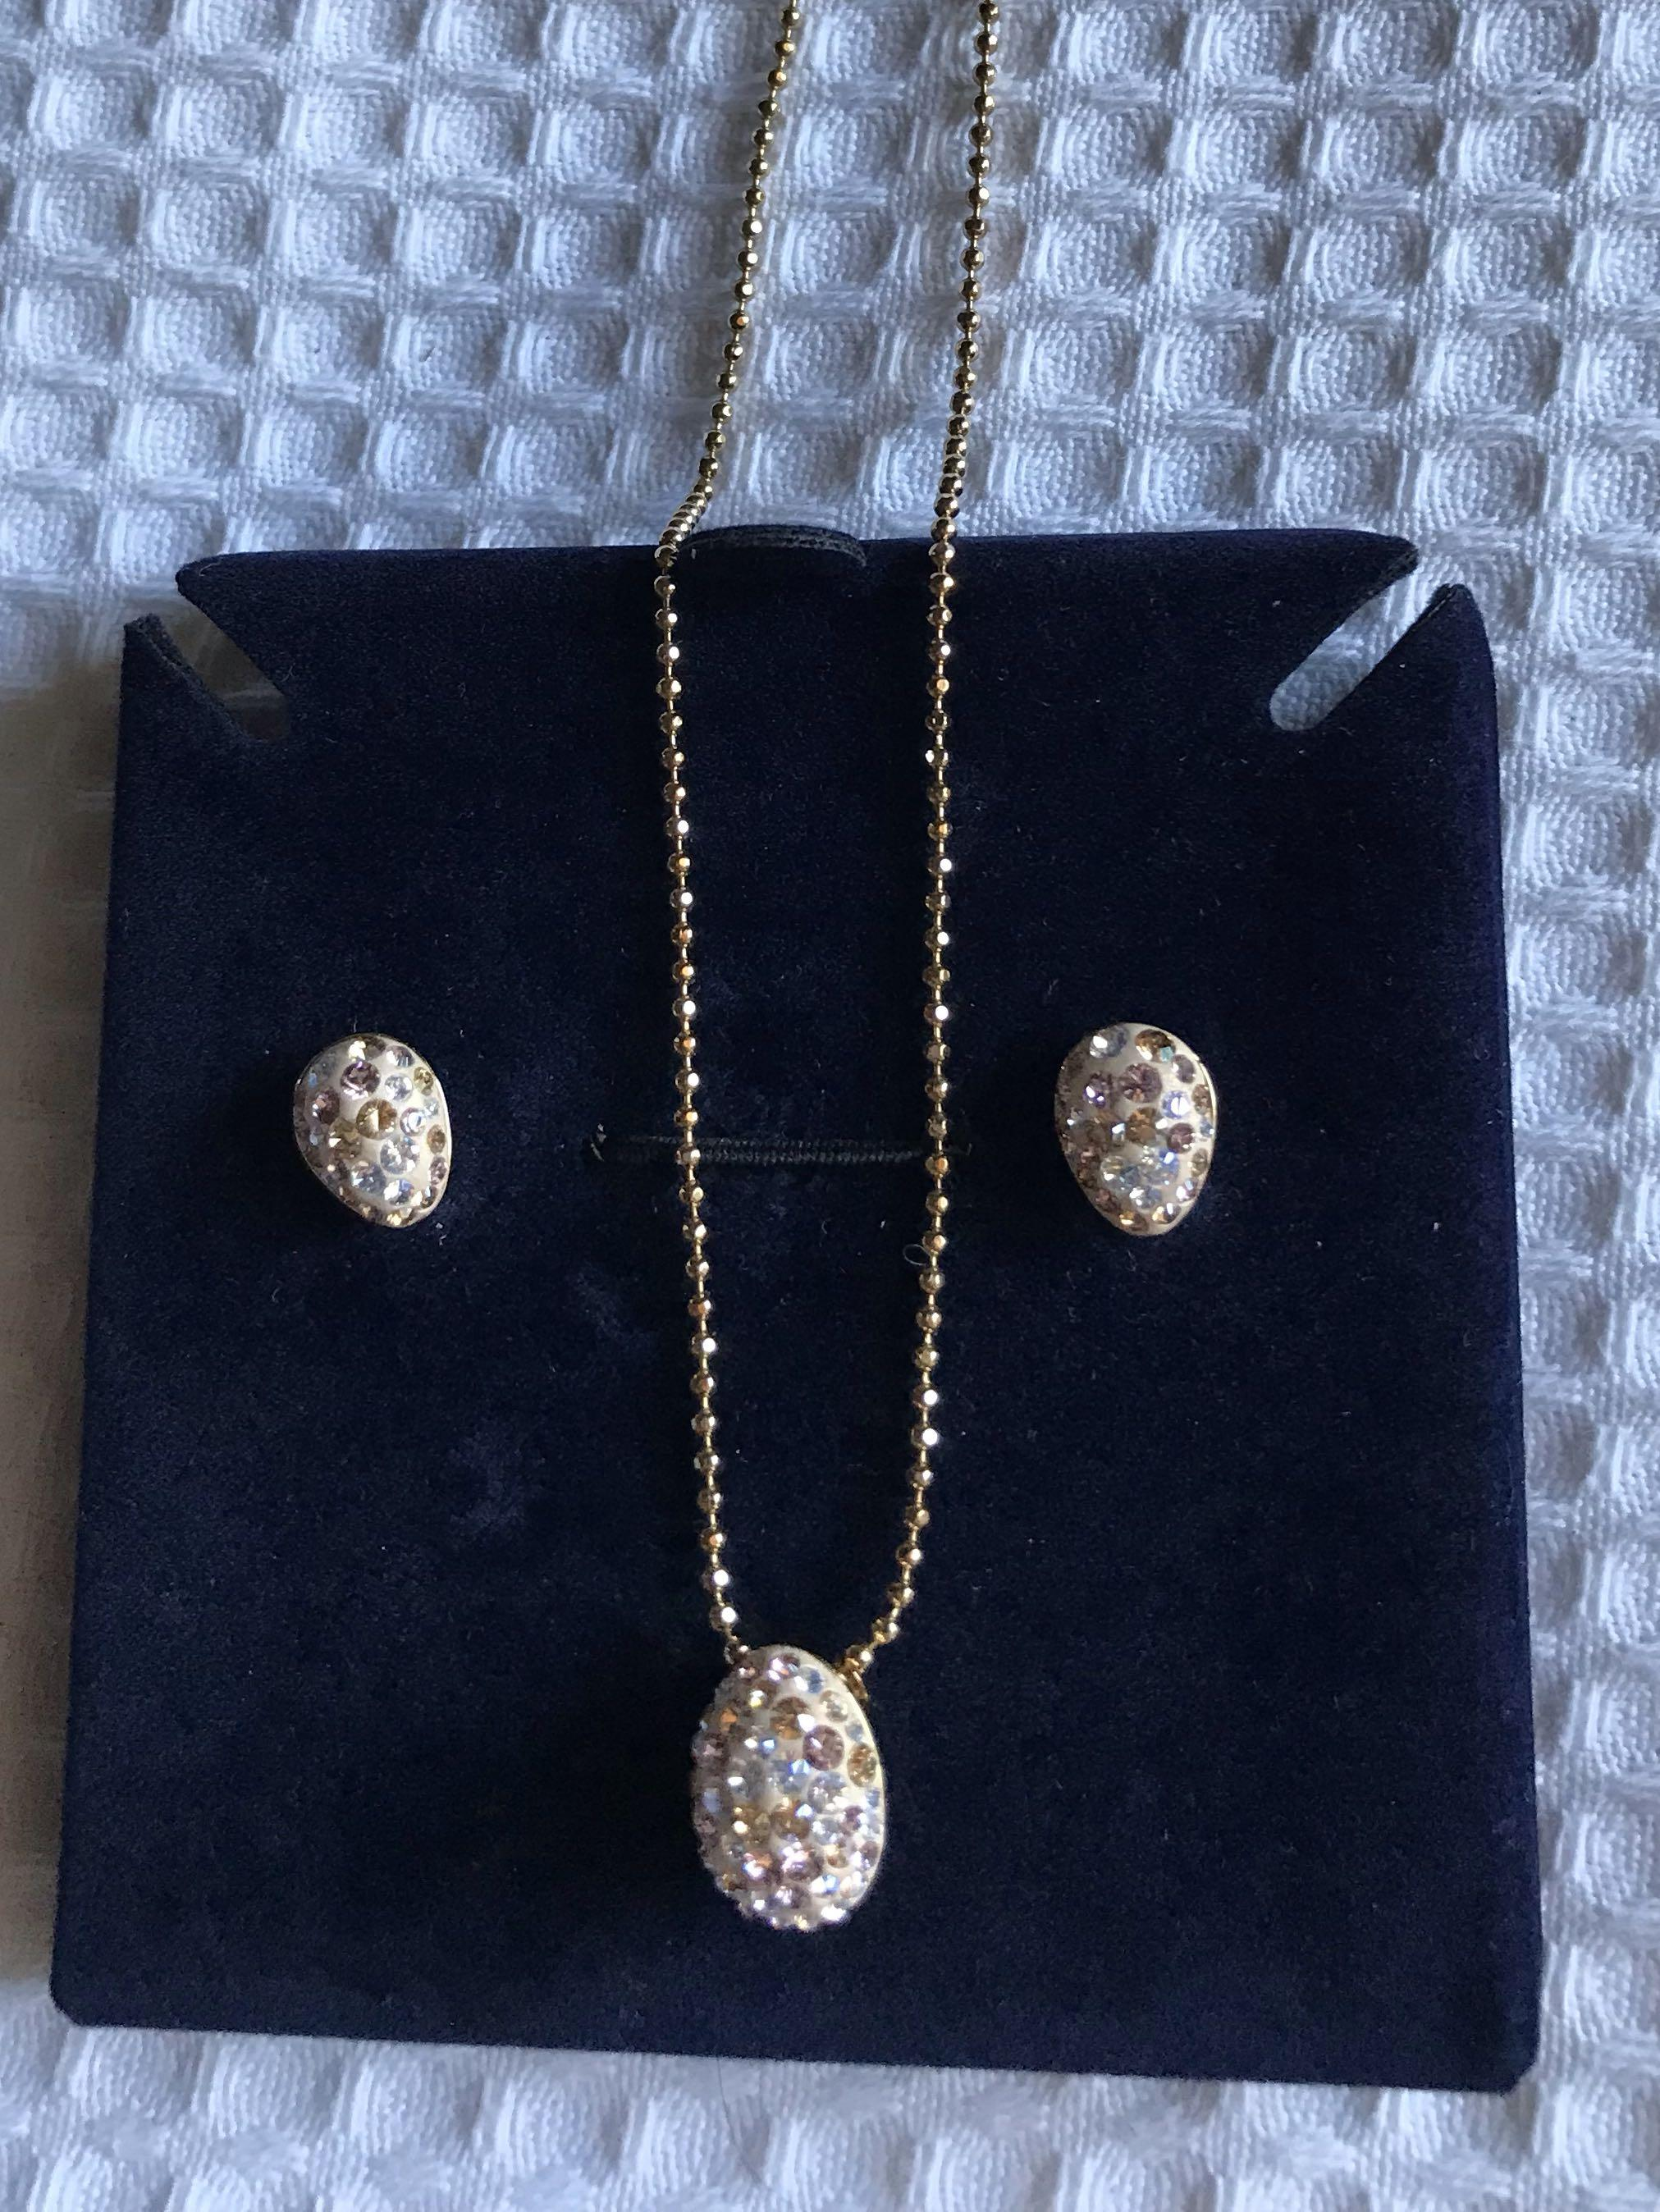 Swarovski necklace and earring set